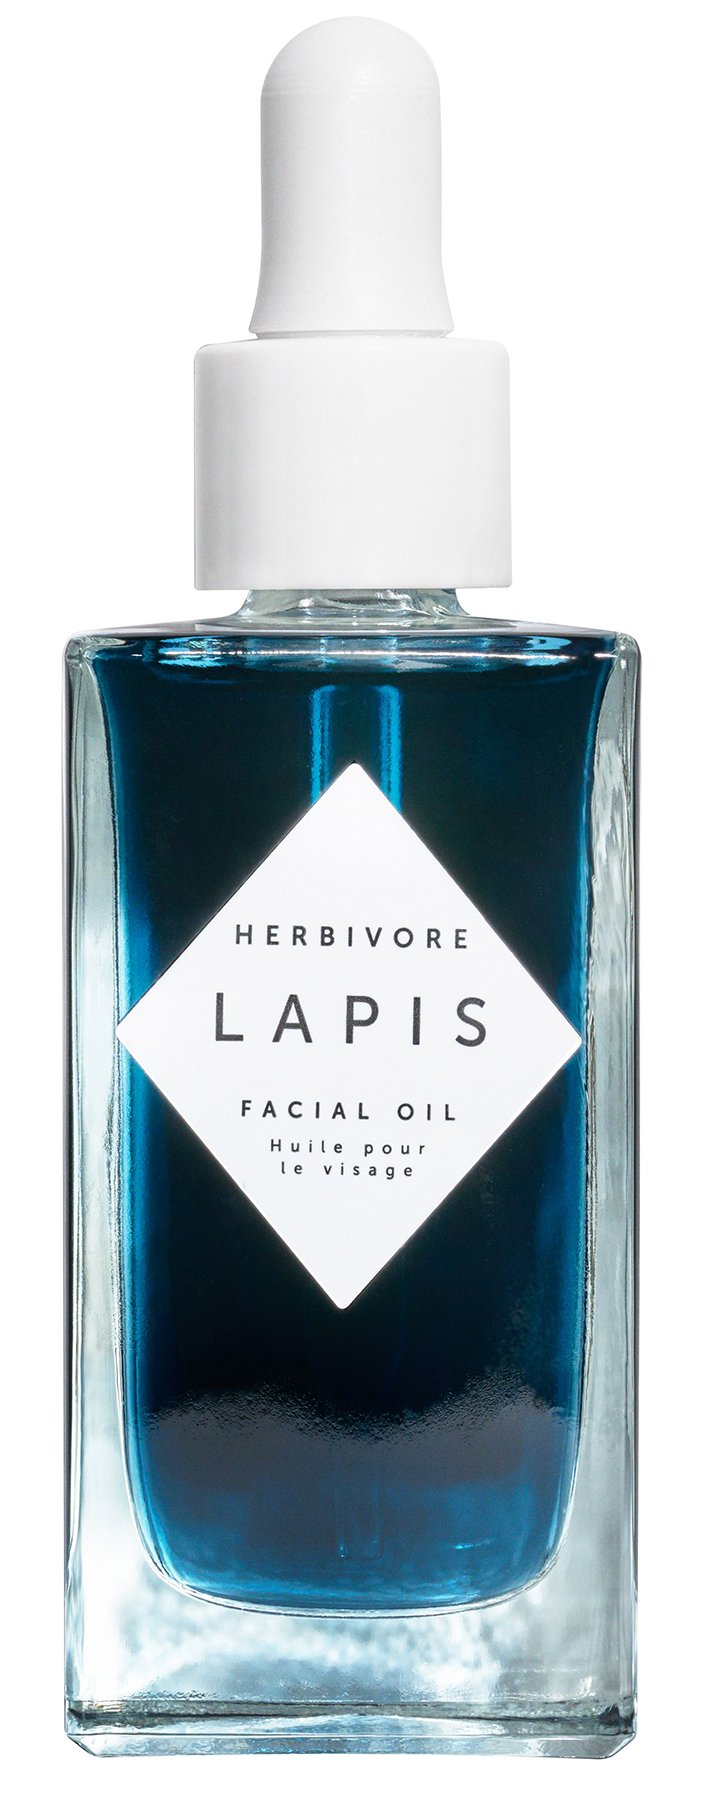 Herbivore Botanicals - Lapis All Natural Facial Oil (1.7 oz / 50 ml)